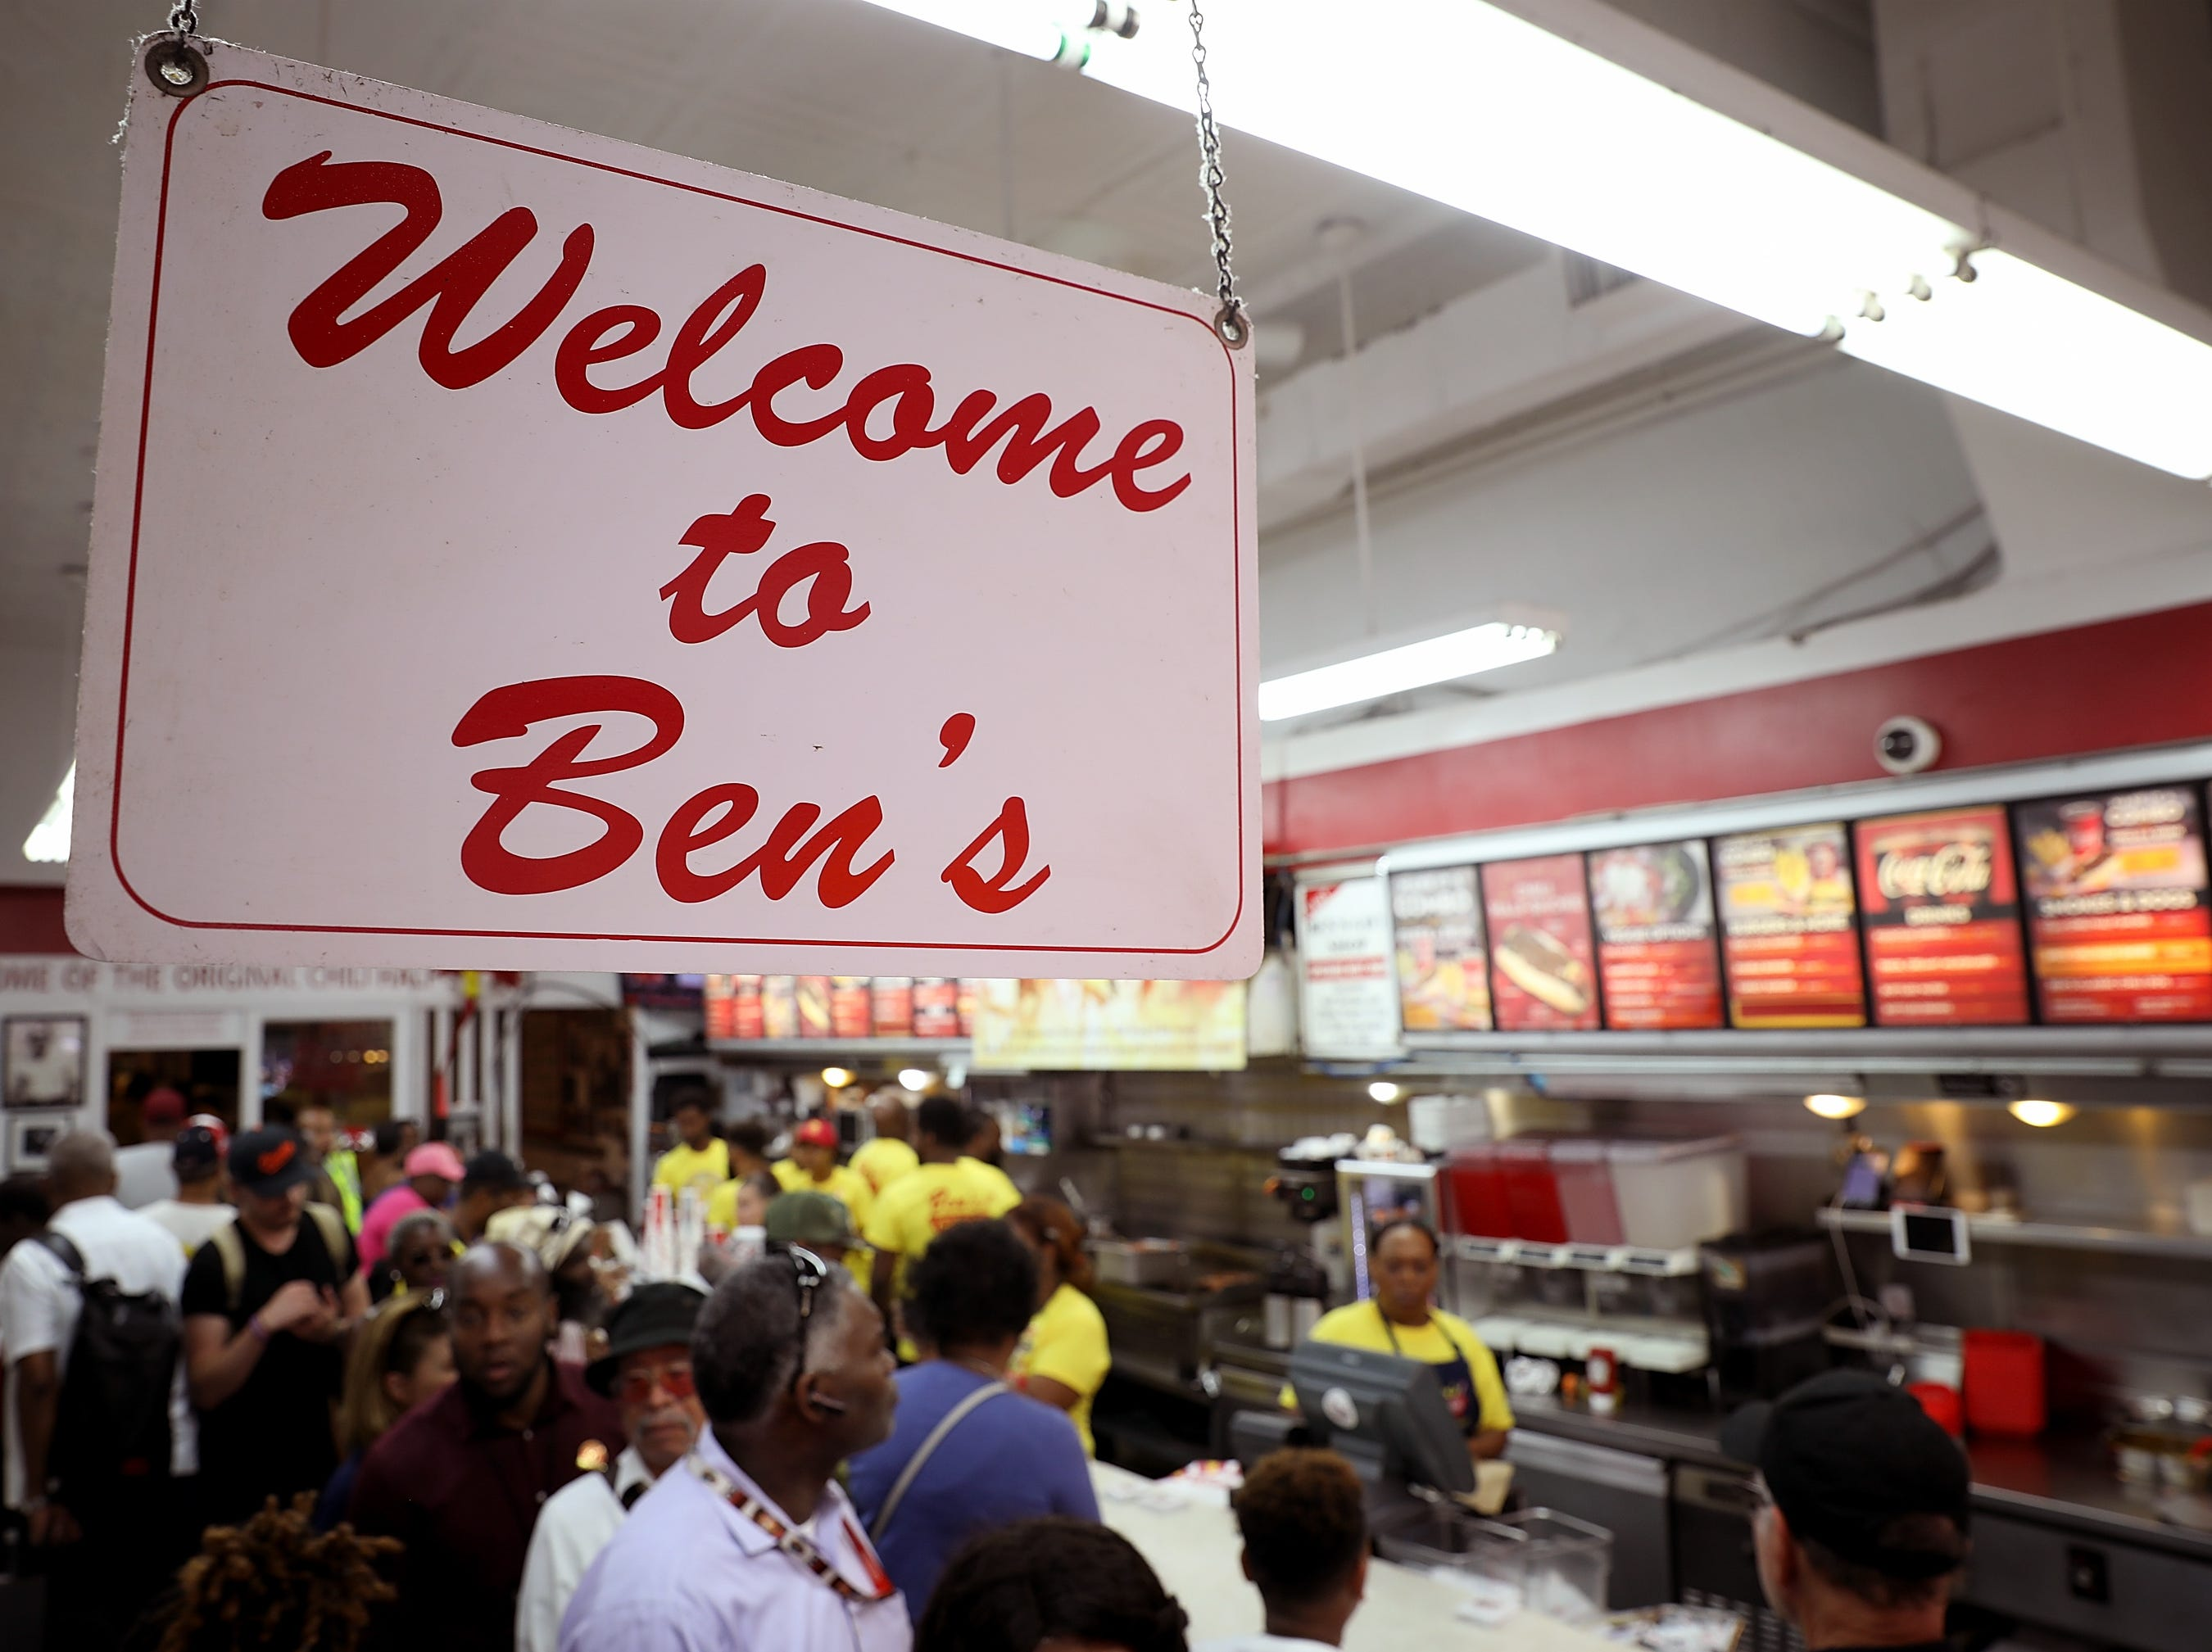 Washington D.C. residents enjoy the 60th birthday block party for area landmark Ben's Chili Bowl Aug. 22, 2018 in Washington, DC.